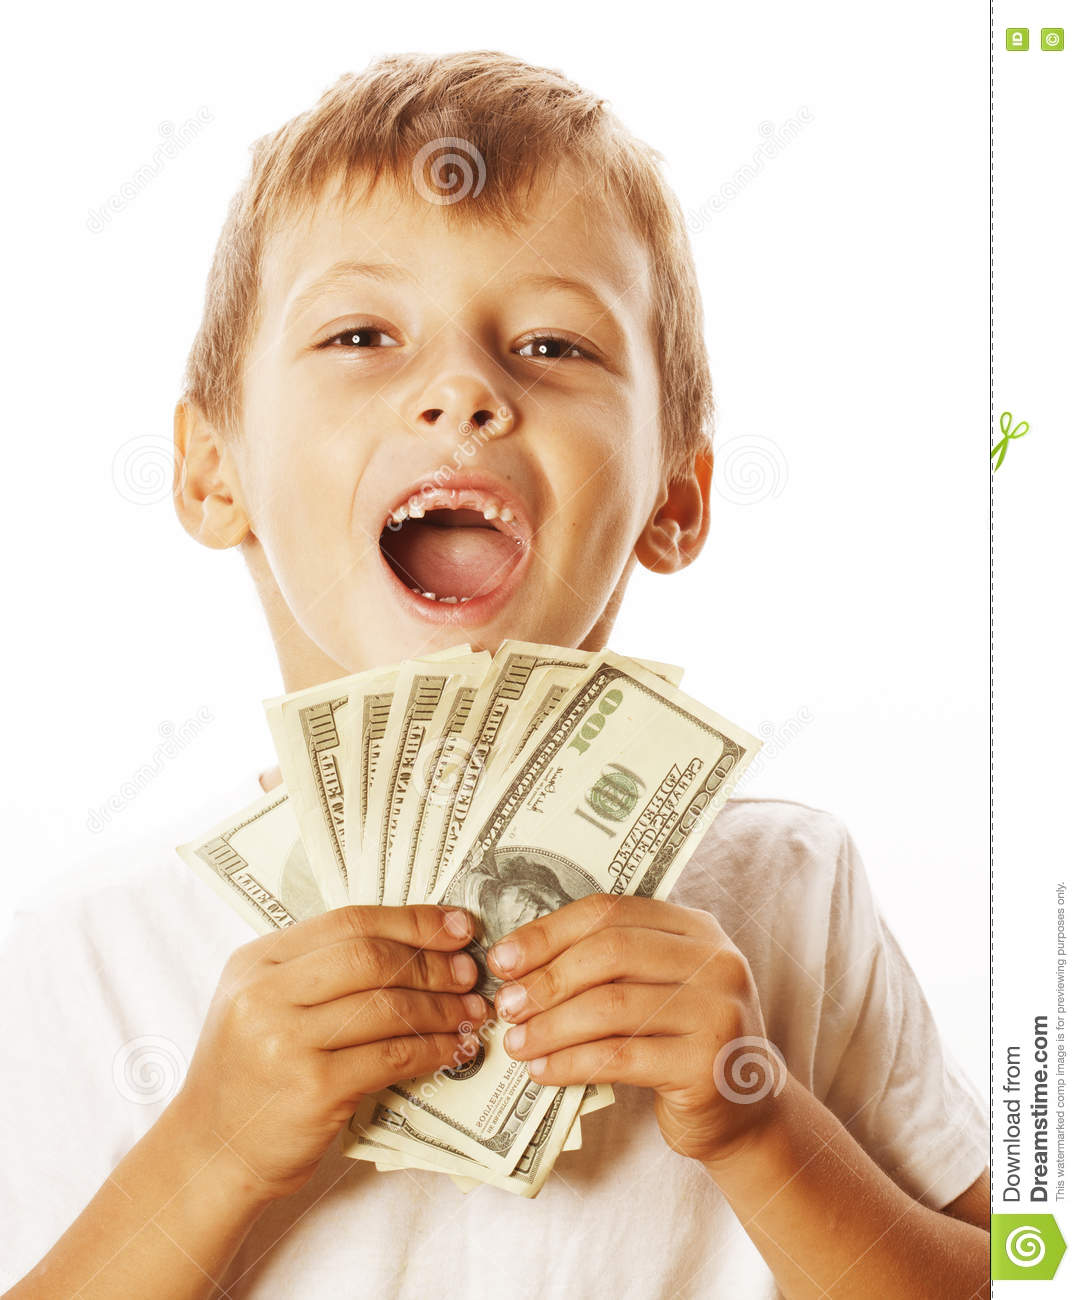 Cute Boys Would Do Anything For Cash